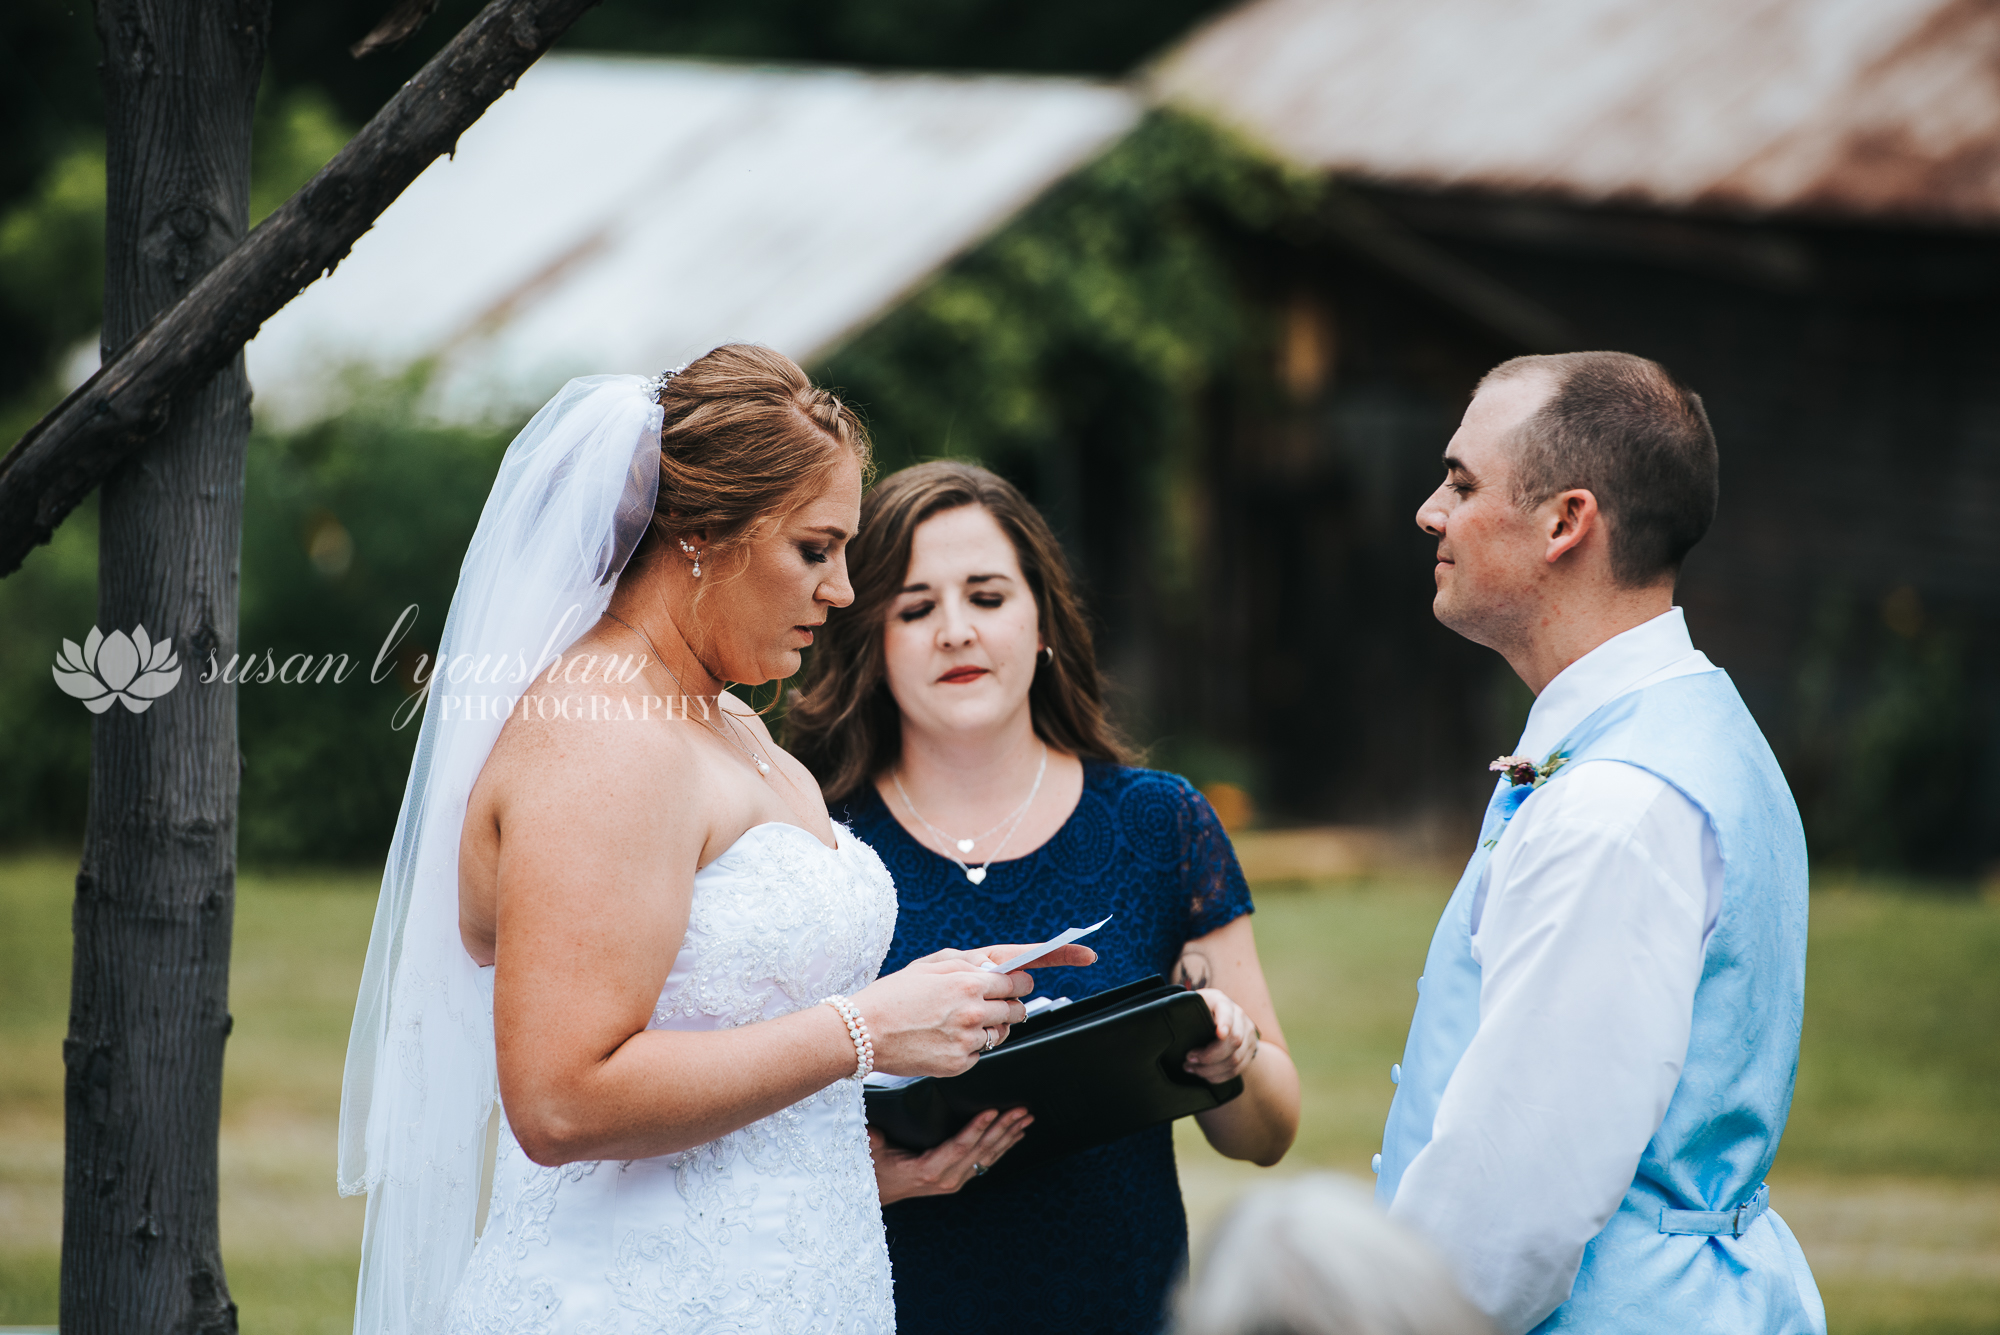 Erin and Jason Wedding Photos 07-06-2019 SLY Photography-100.jpg